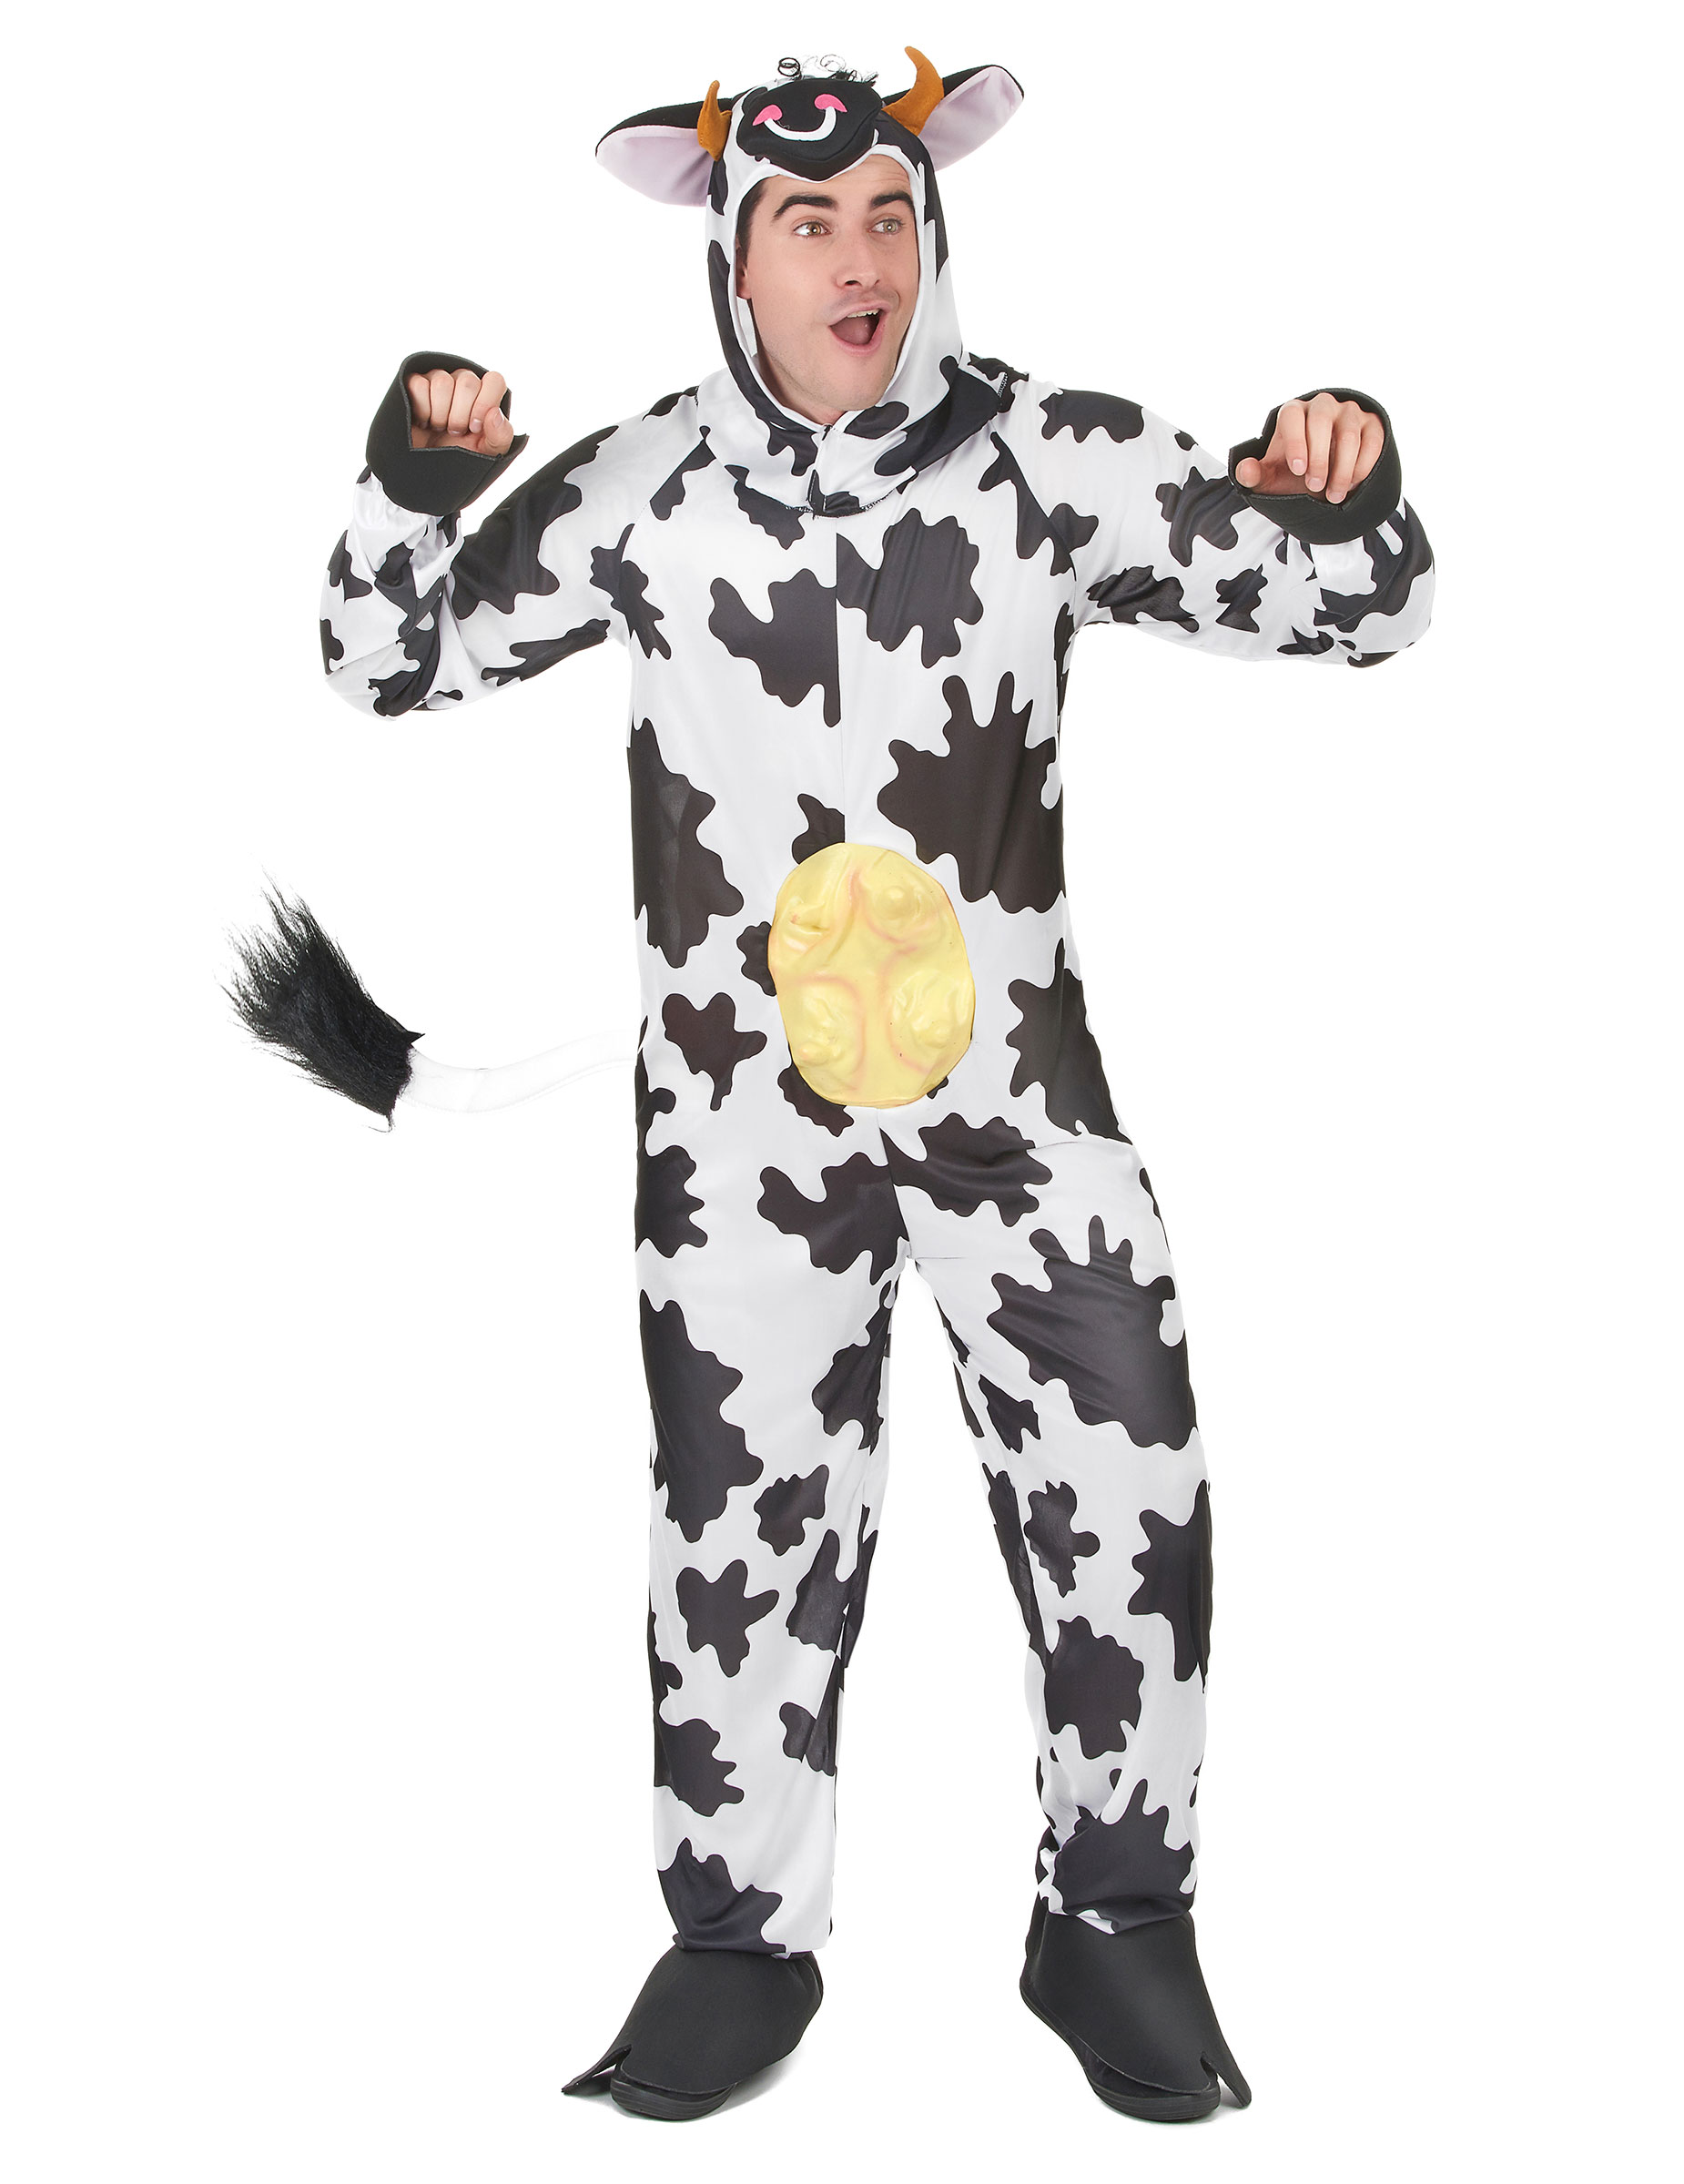 Main - Adults Costumes - Funny cow costume for adults